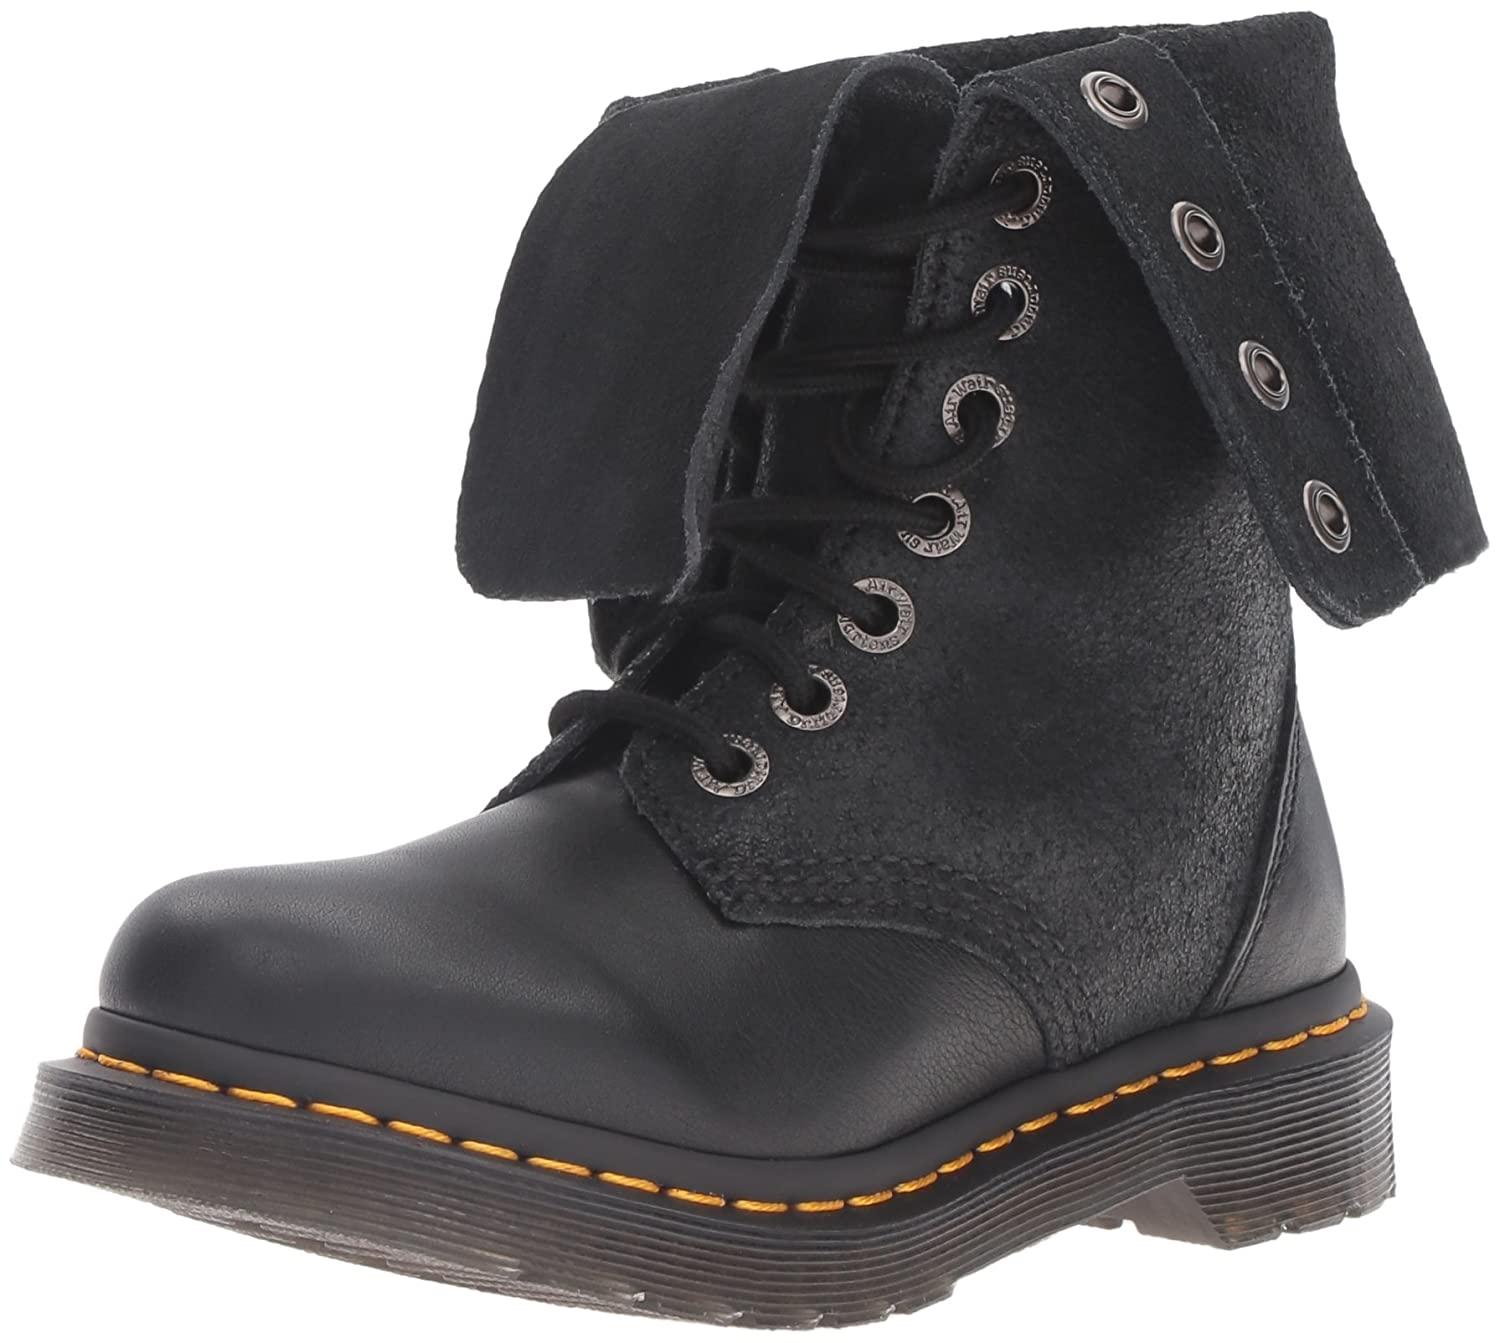 Dr. Martens Women's Hazil Black Virginia Leather Fashion Boot B012PWMDRI 4 Medium UK (6 US)|Black Virginia Leather